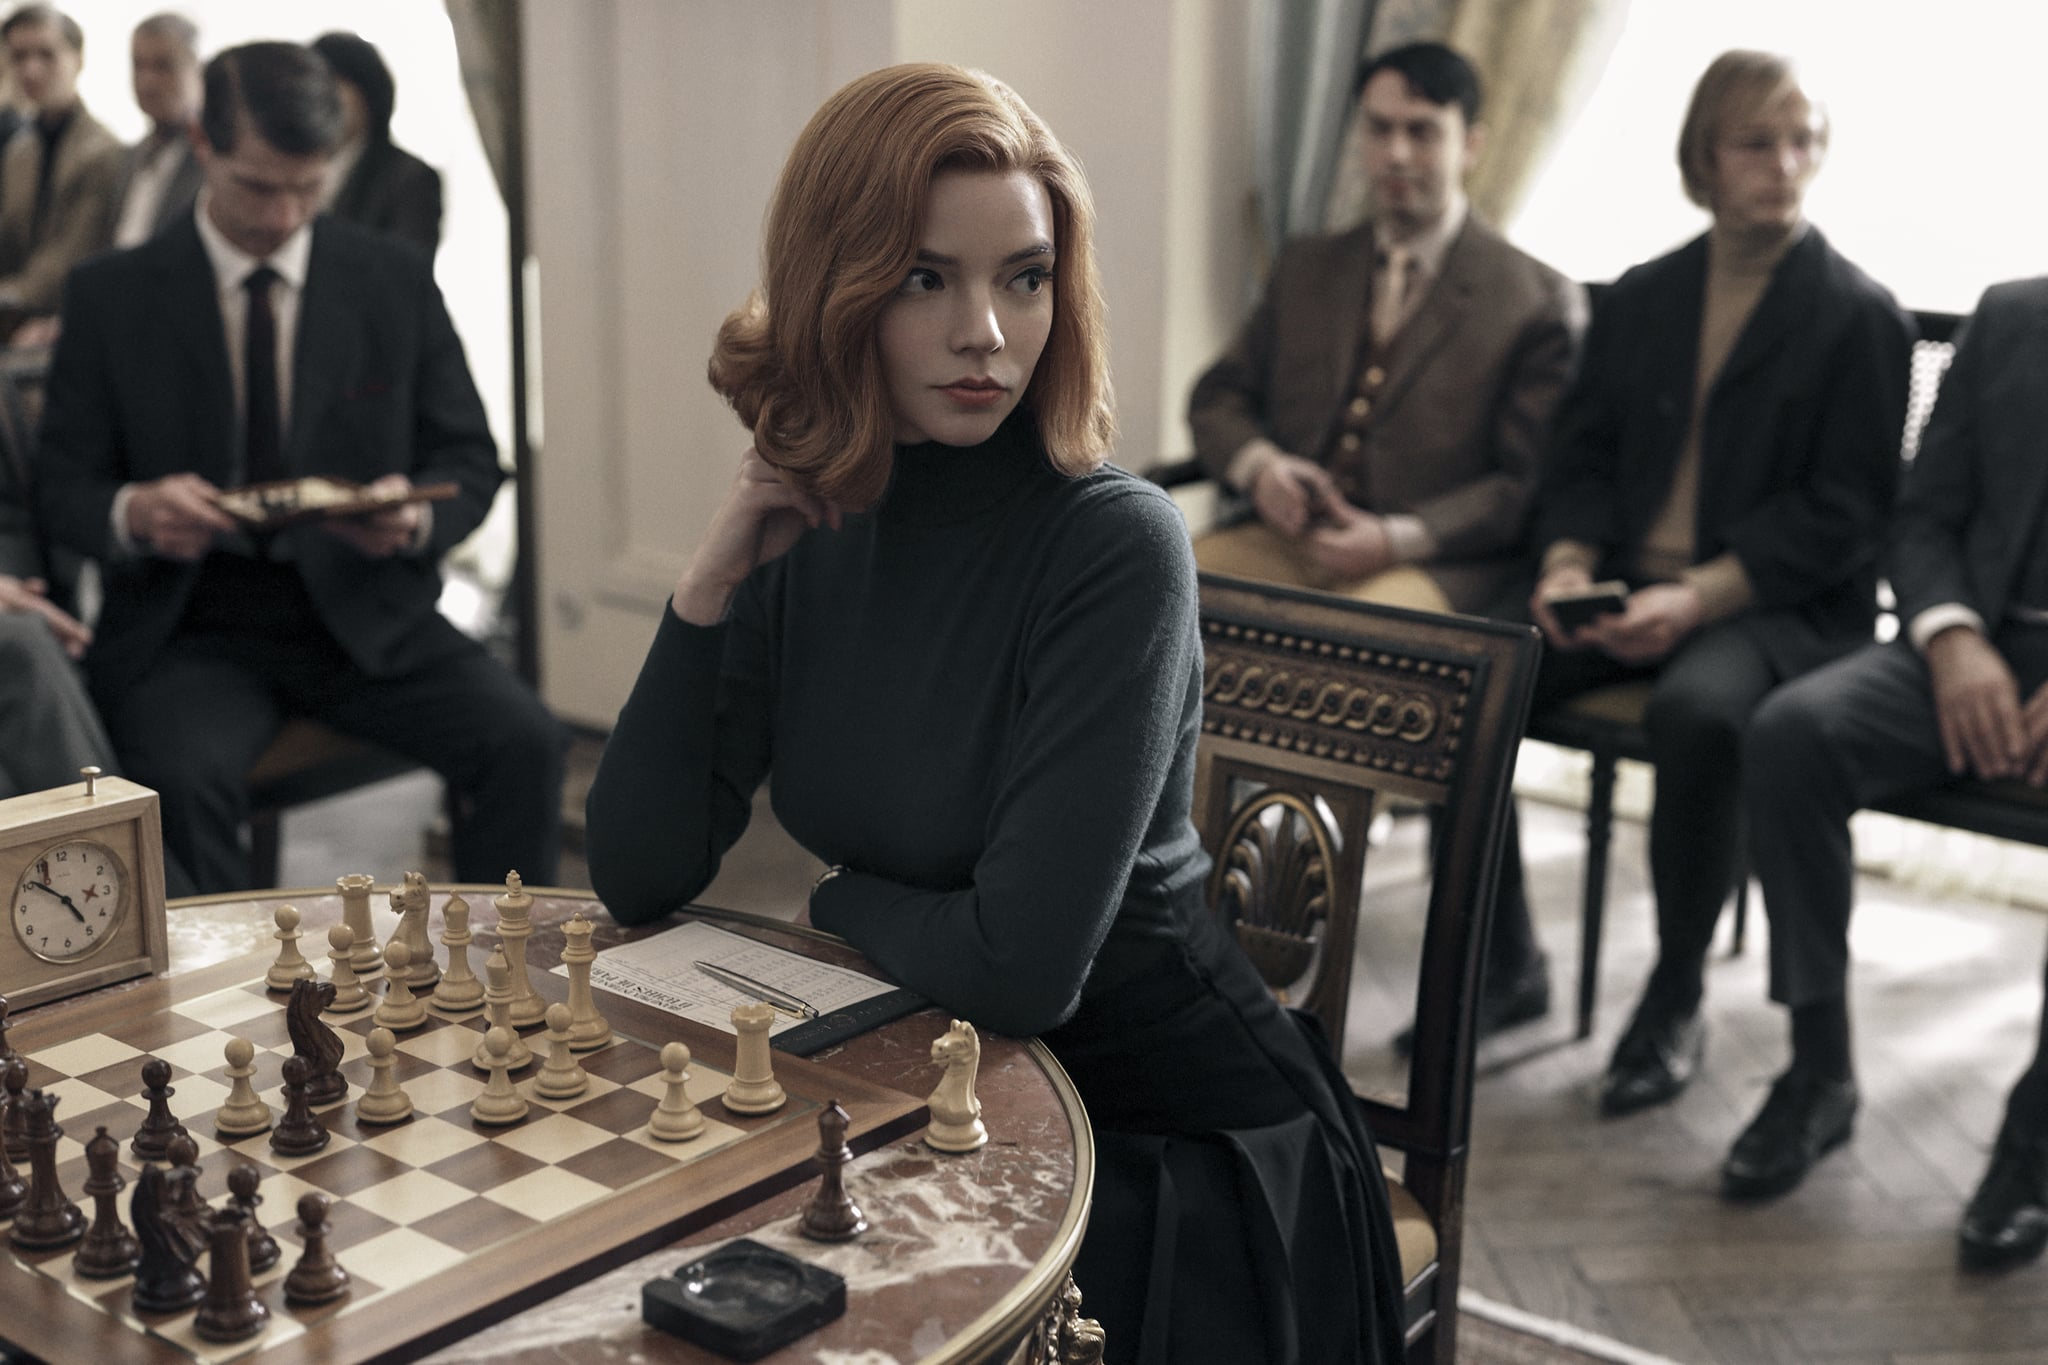 THE QUEEN'S GAMBIT (L to R) ANYA TAYLOR as BETH HARMON in THE QUEEN'S GAMBIT. Cr. CHARLIE GRAY/NETFLIX  2020